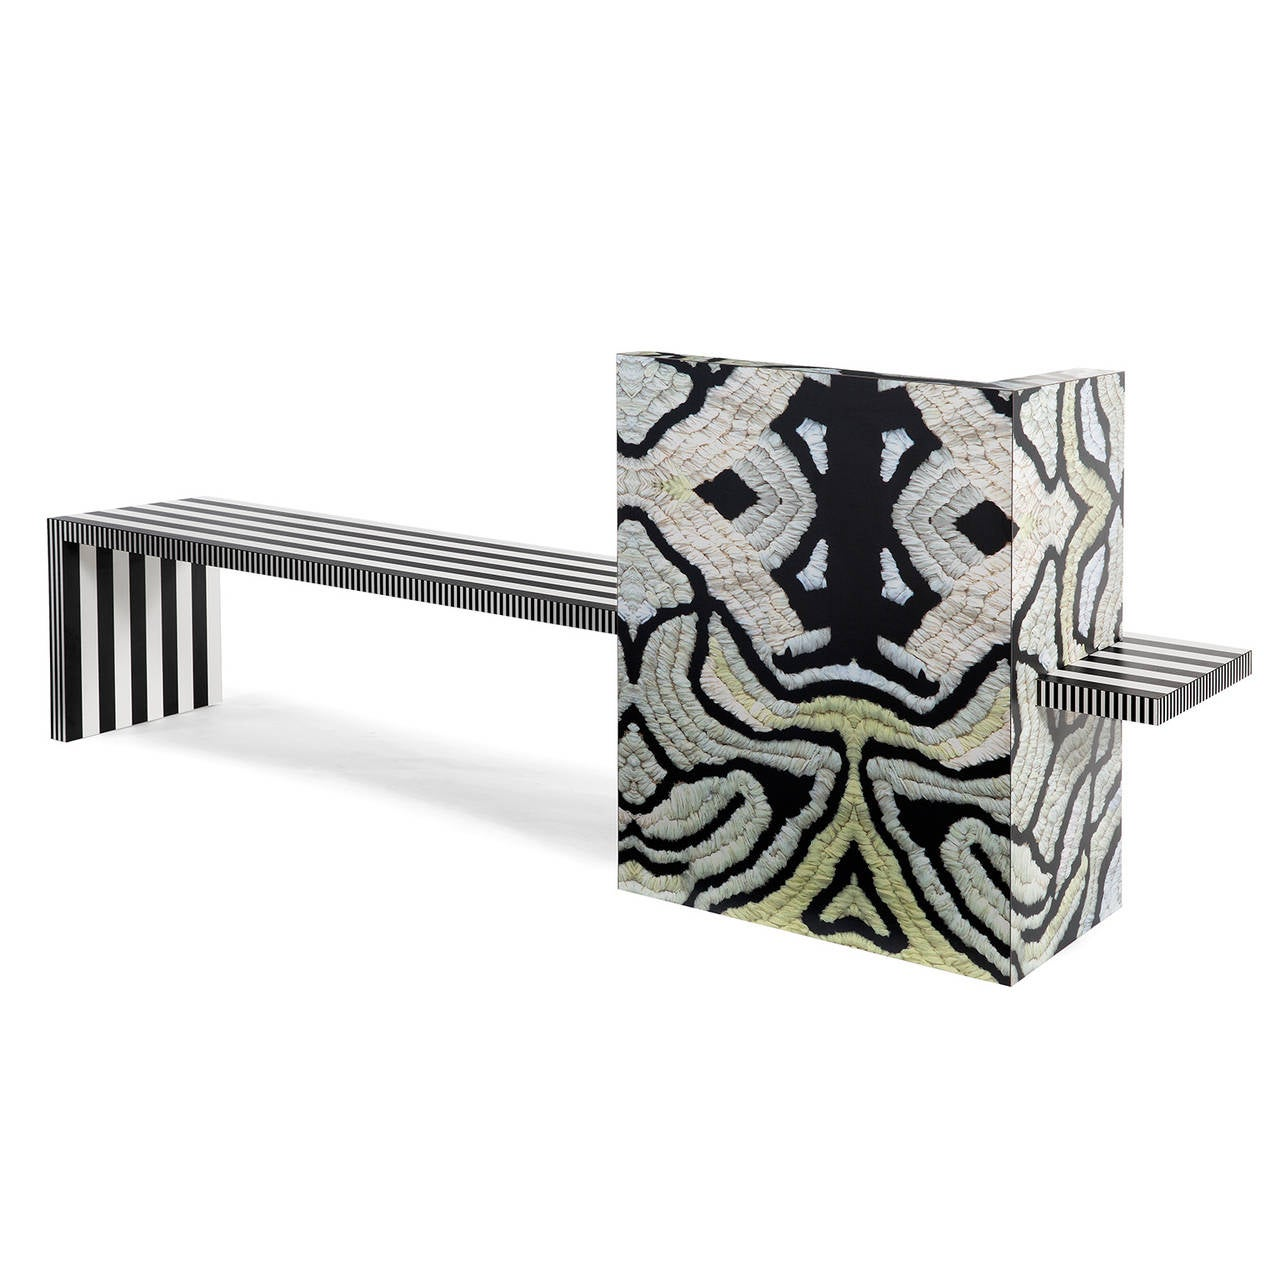 Contemporary Memphis Inspired Bench Neo Laminati Collection For Sale